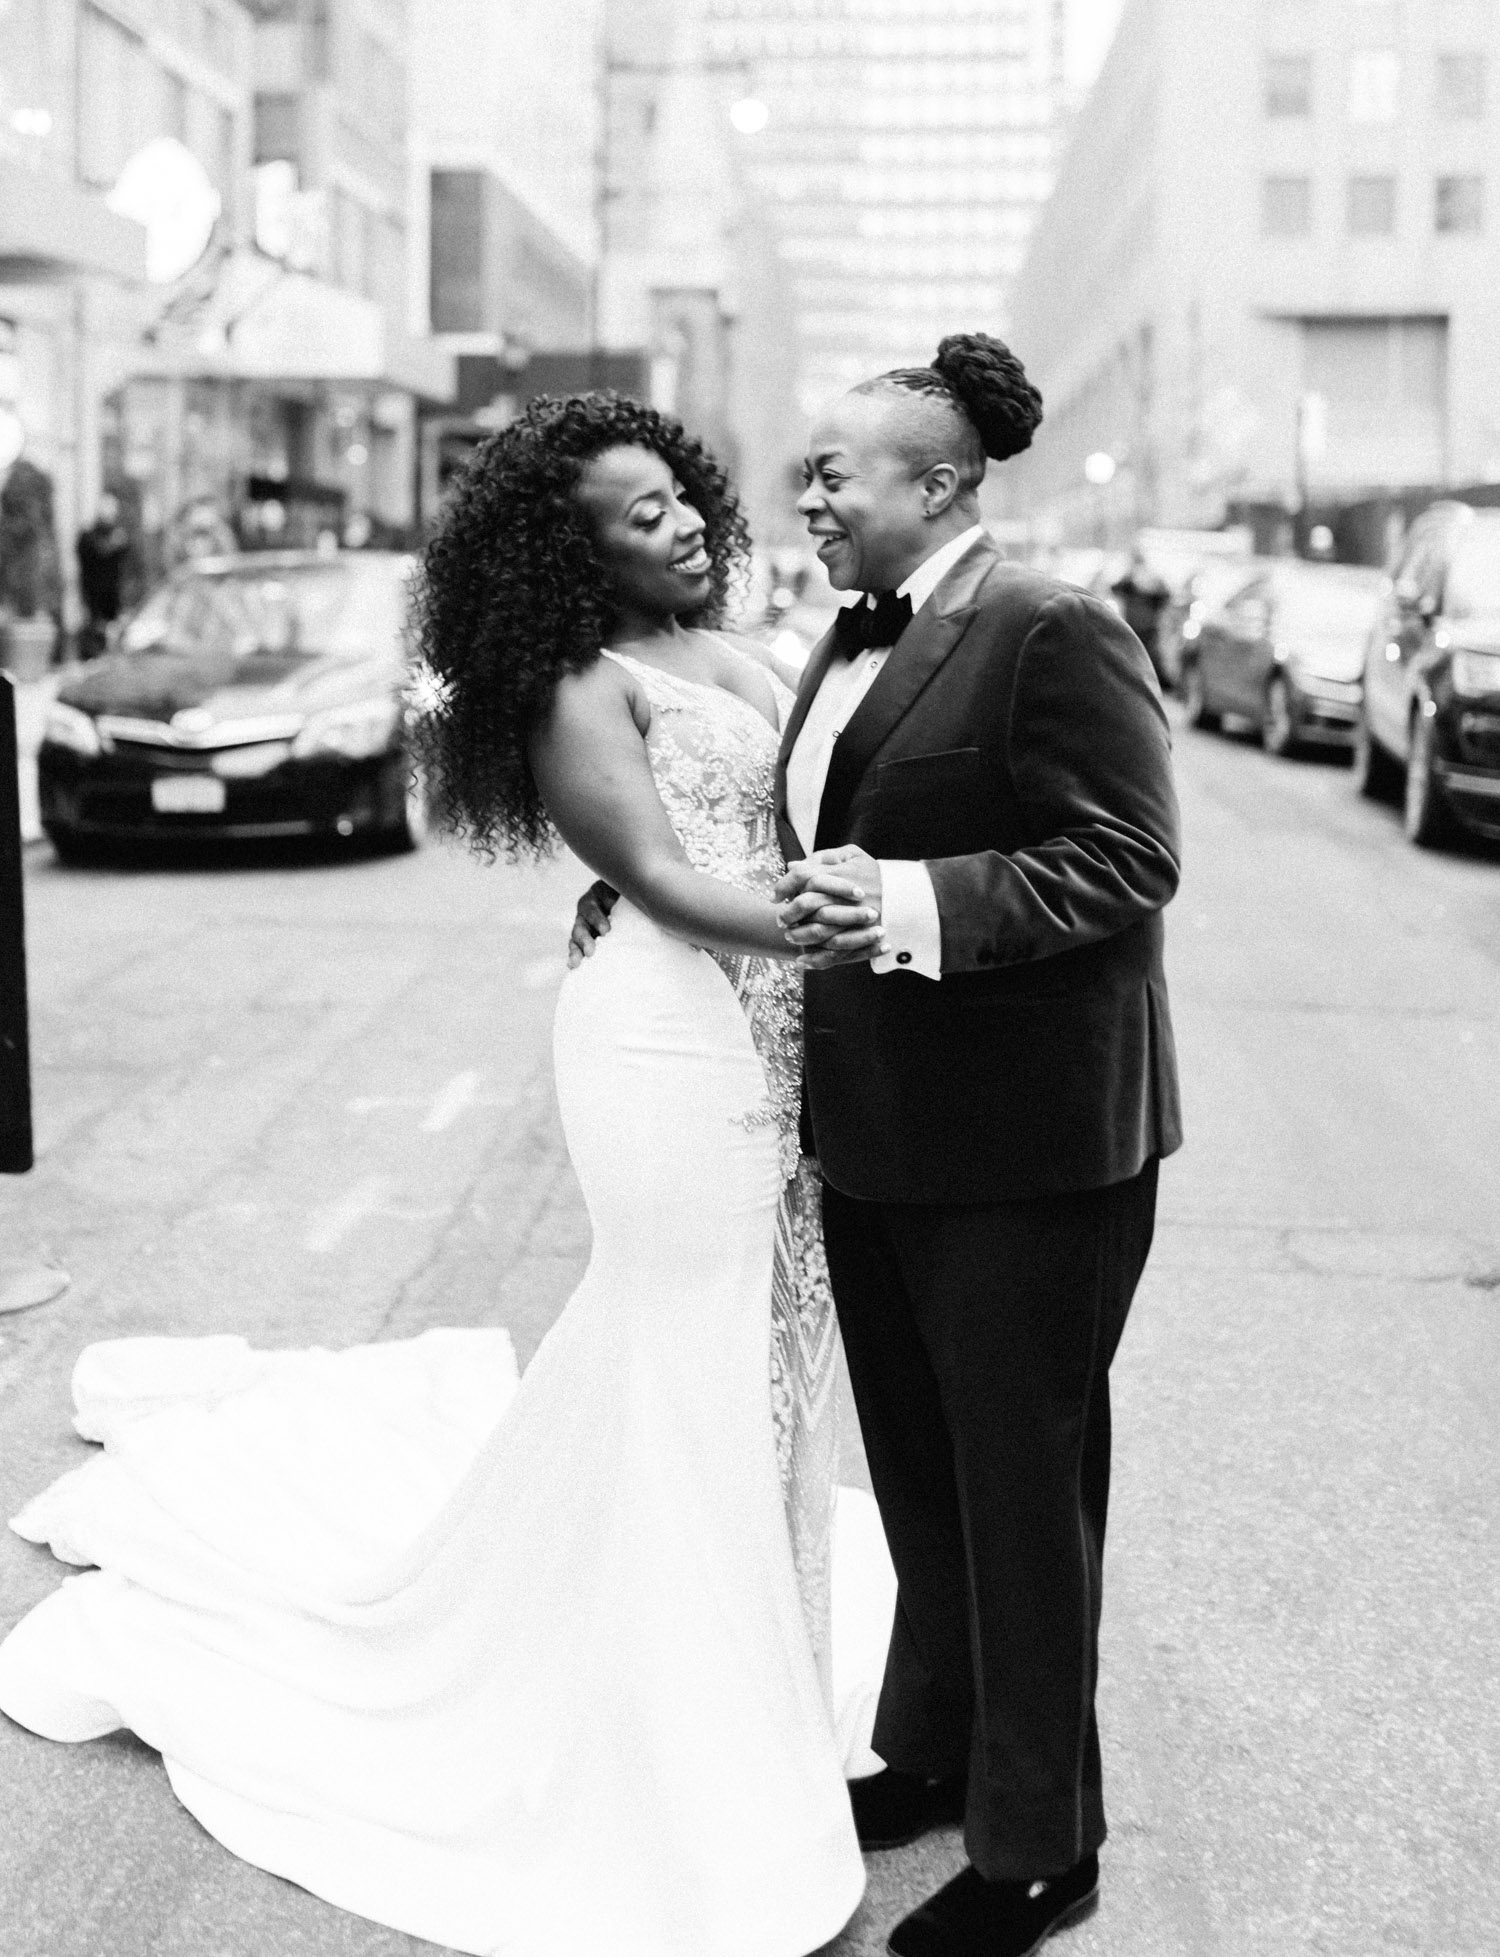 A black same sex couple dances in the streets of New York City on their wedding day in Brooklyn